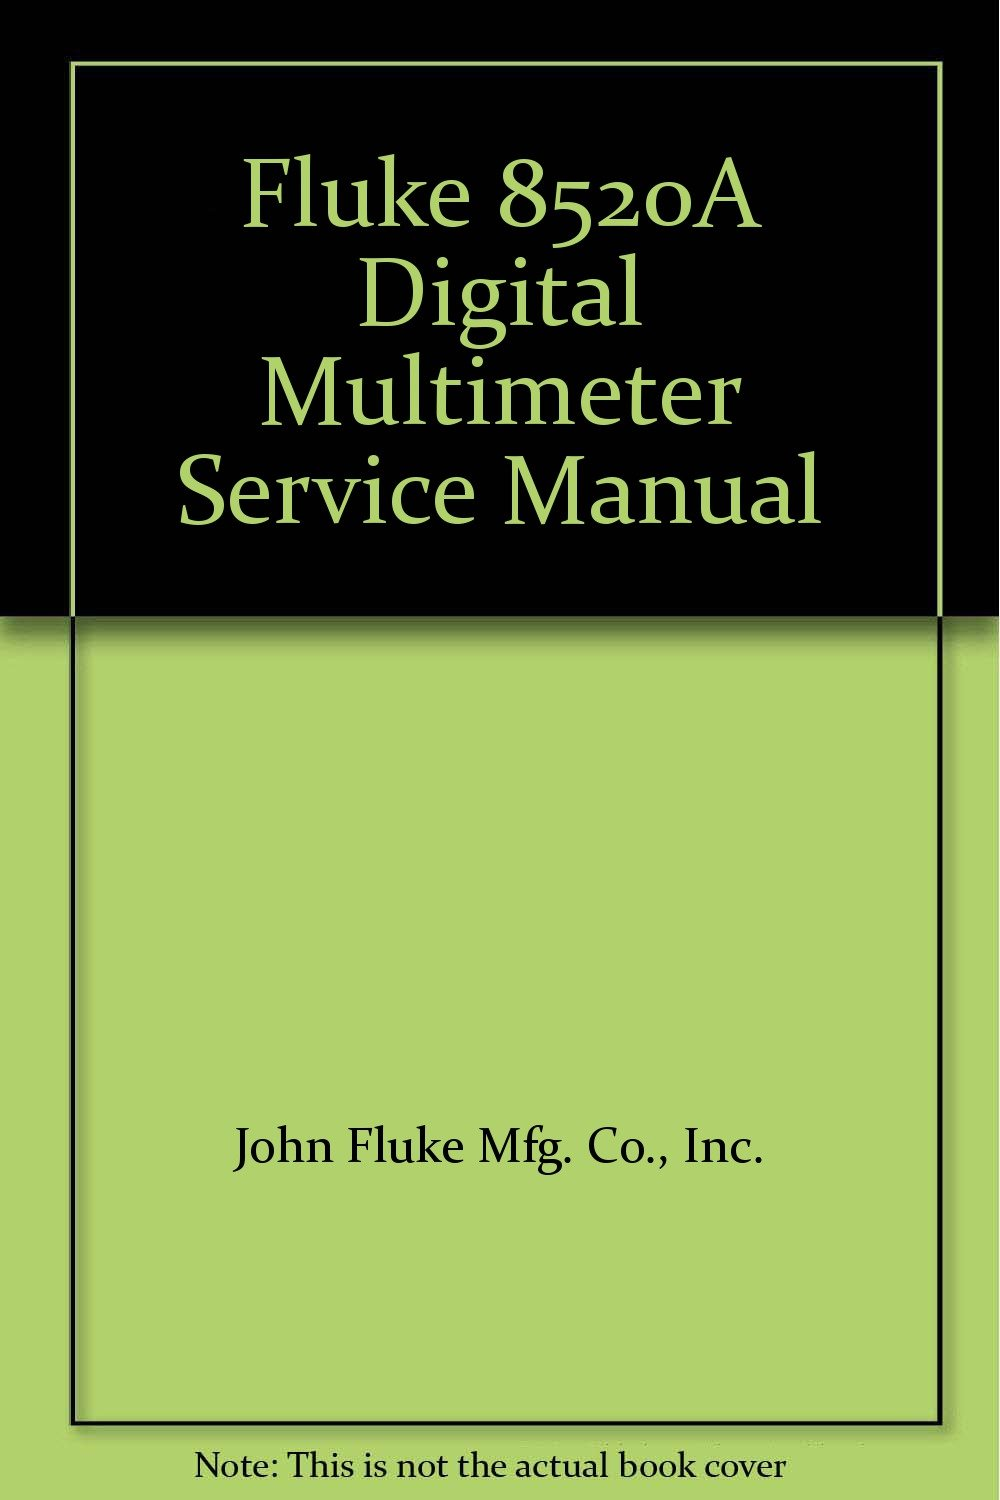 fluke 8520a digital multimeter service manual inc john fluke mfg rh amazon com Customer Service Books HP Owner Manuals